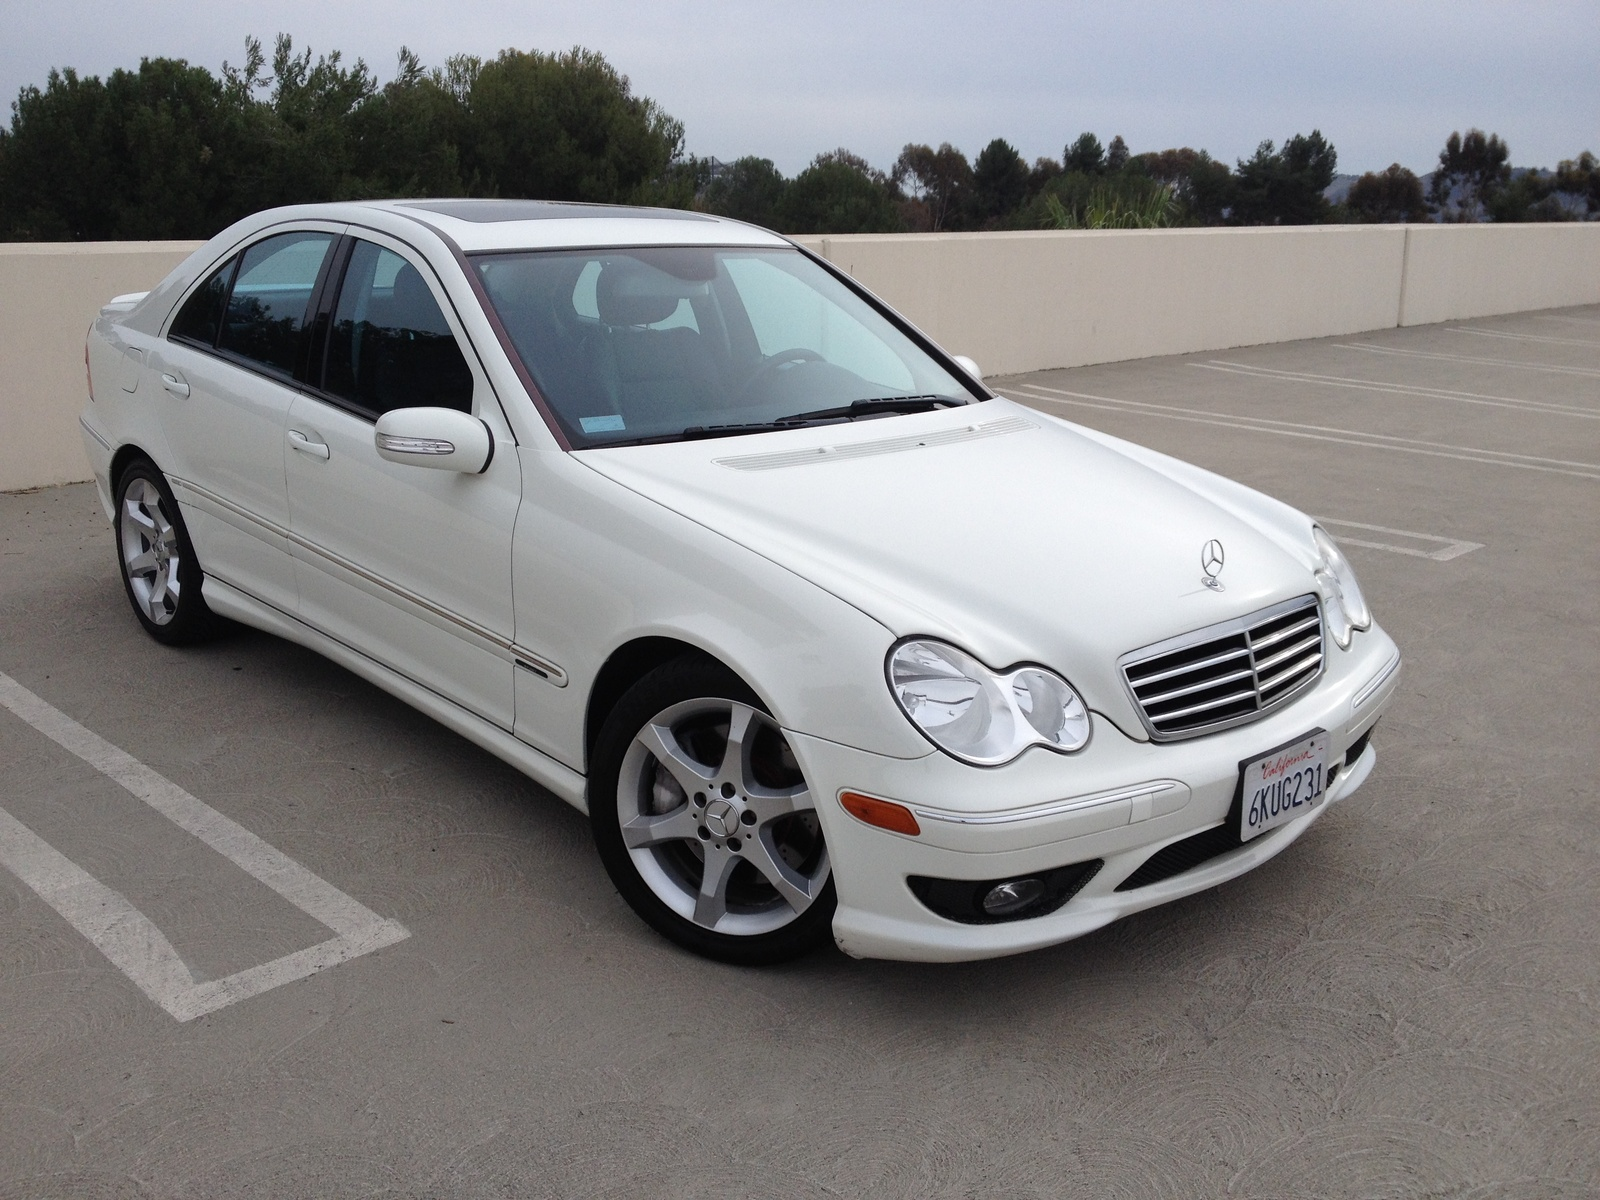 used 2013 mercedes benz c class for sale naperville il sexy girl and car photos. Black Bedroom Furniture Sets. Home Design Ideas